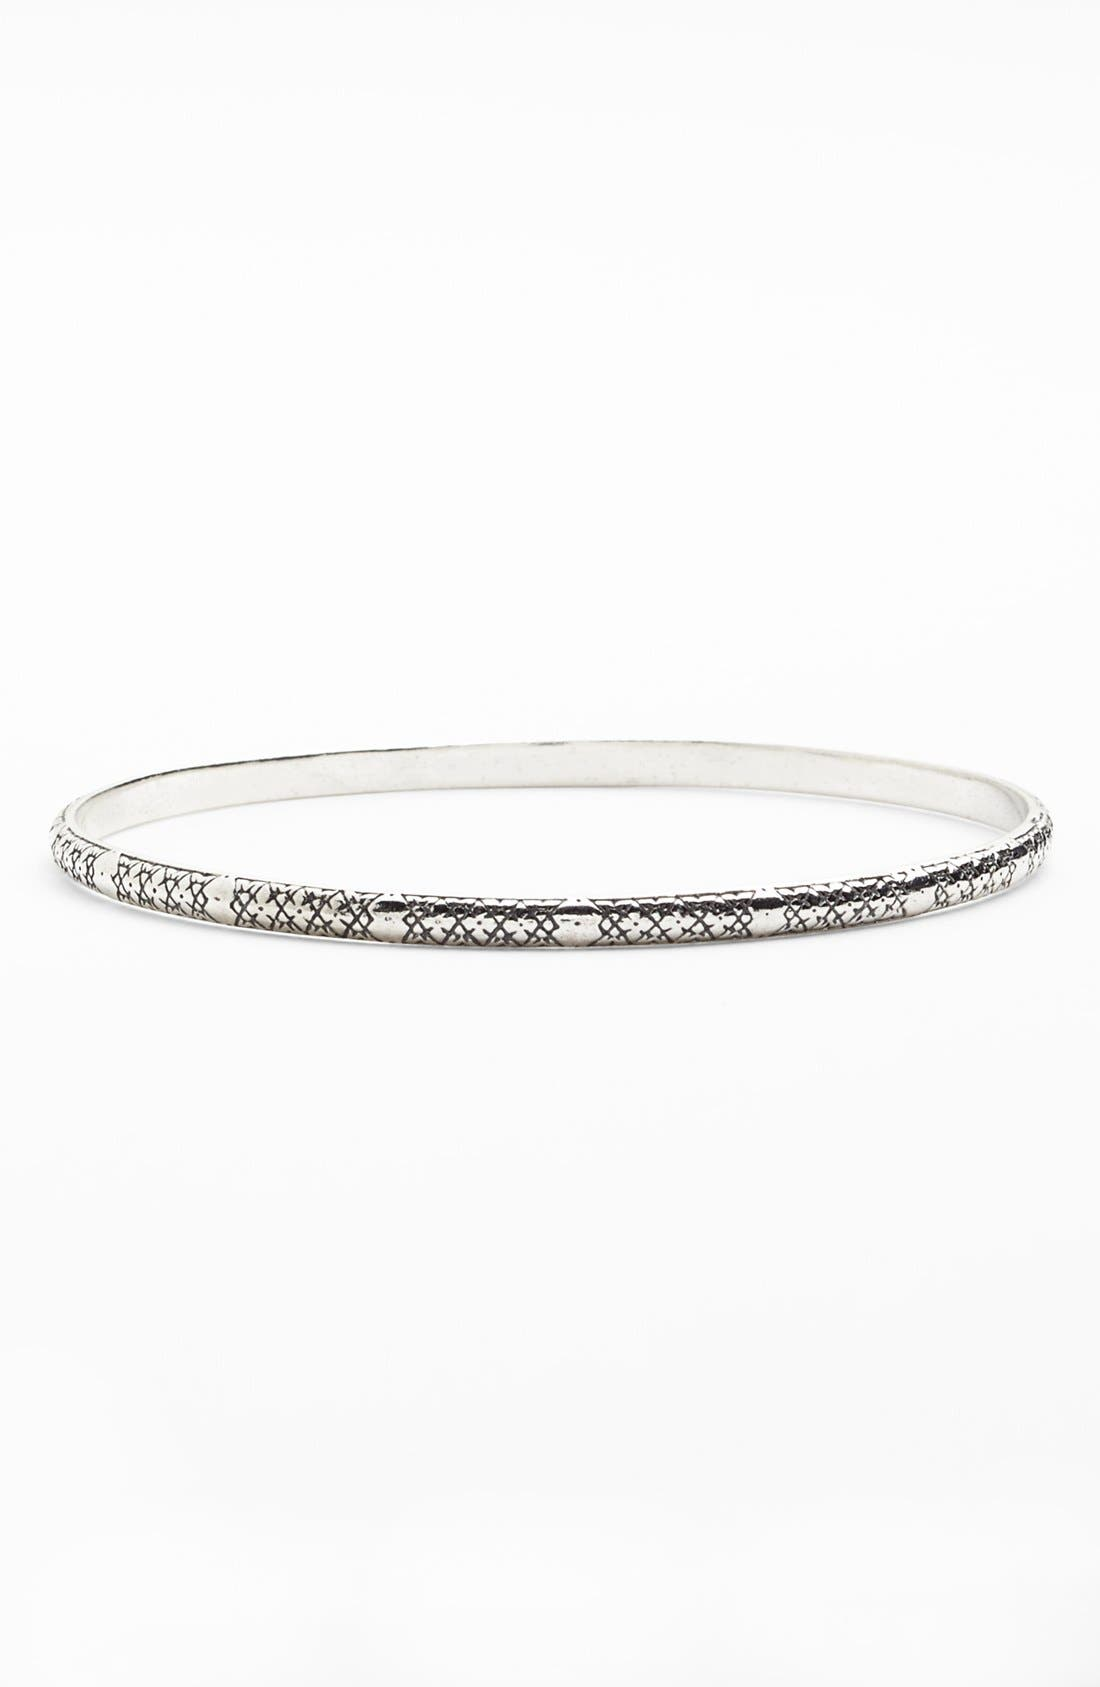 Alternate Image 1 Selected - Konstantino 'Classics' Etched Bangle